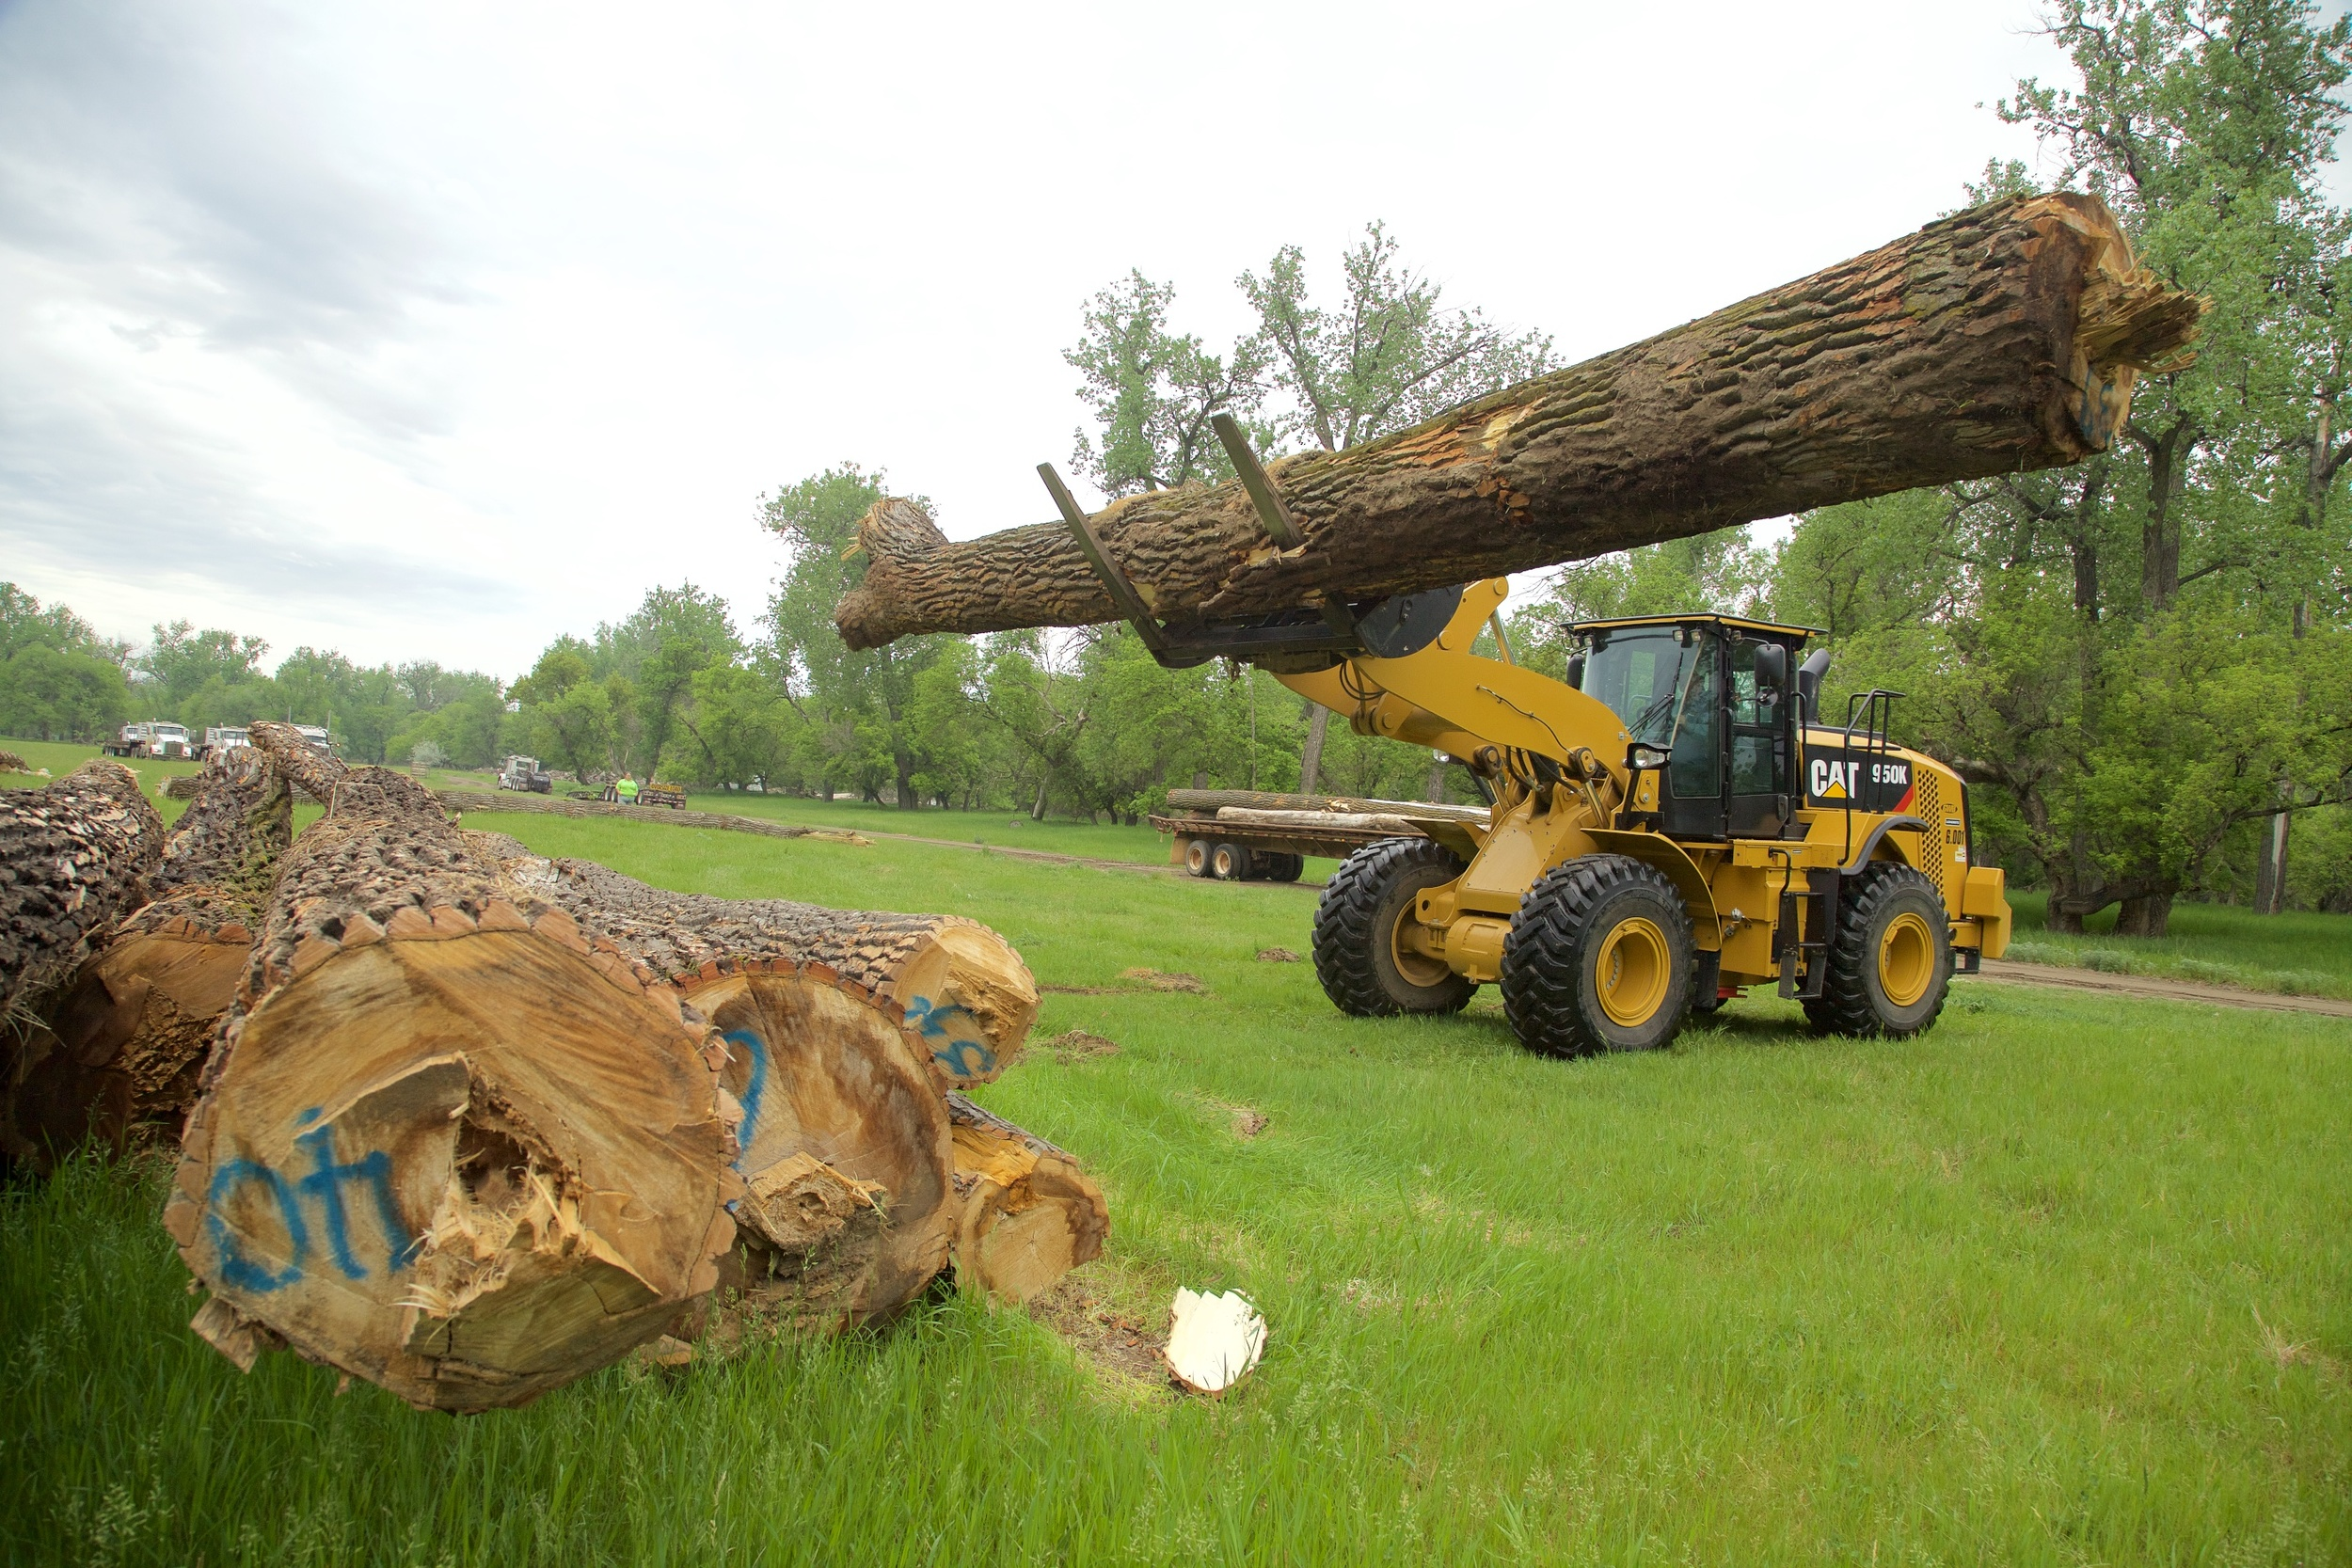 Cottonwood logs cut down near the Missouri River for transport to Dickinson